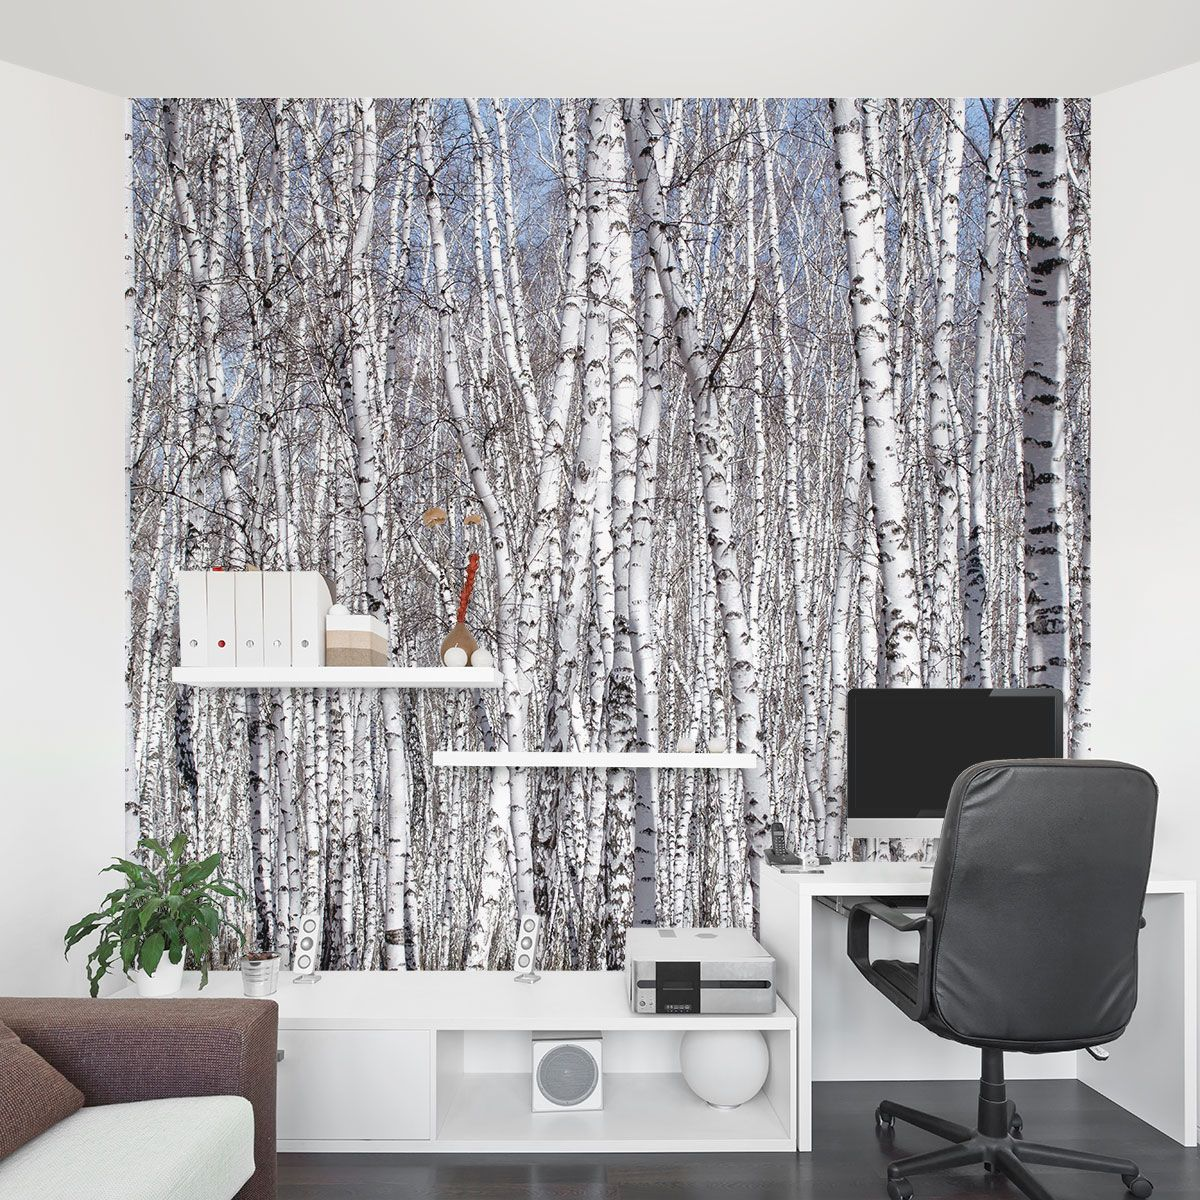 Captivating White Birch Trees Wall Mural #wallums Part 12